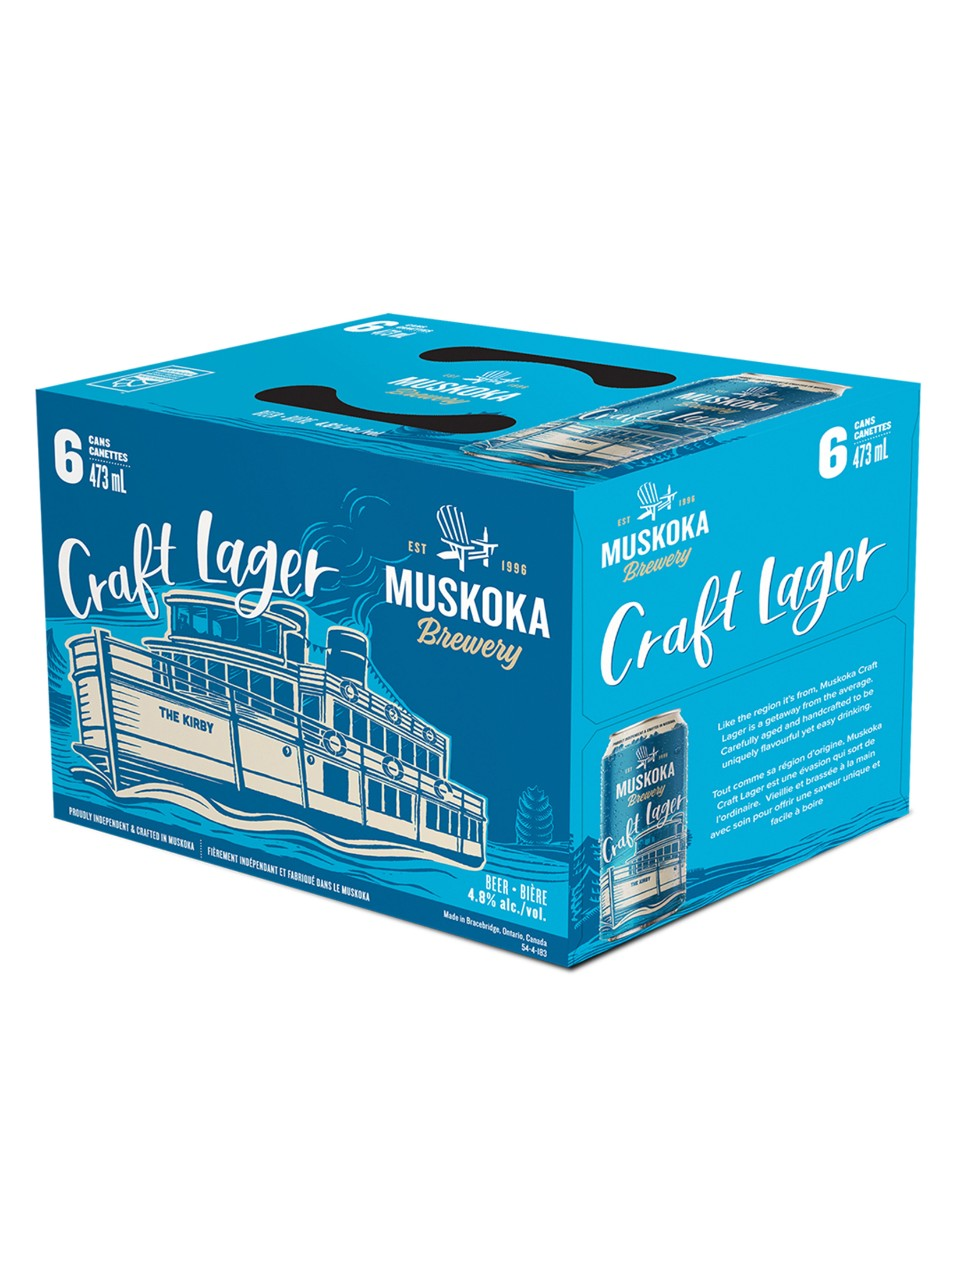 Muskoka Brewery Craft Lager from LCBO